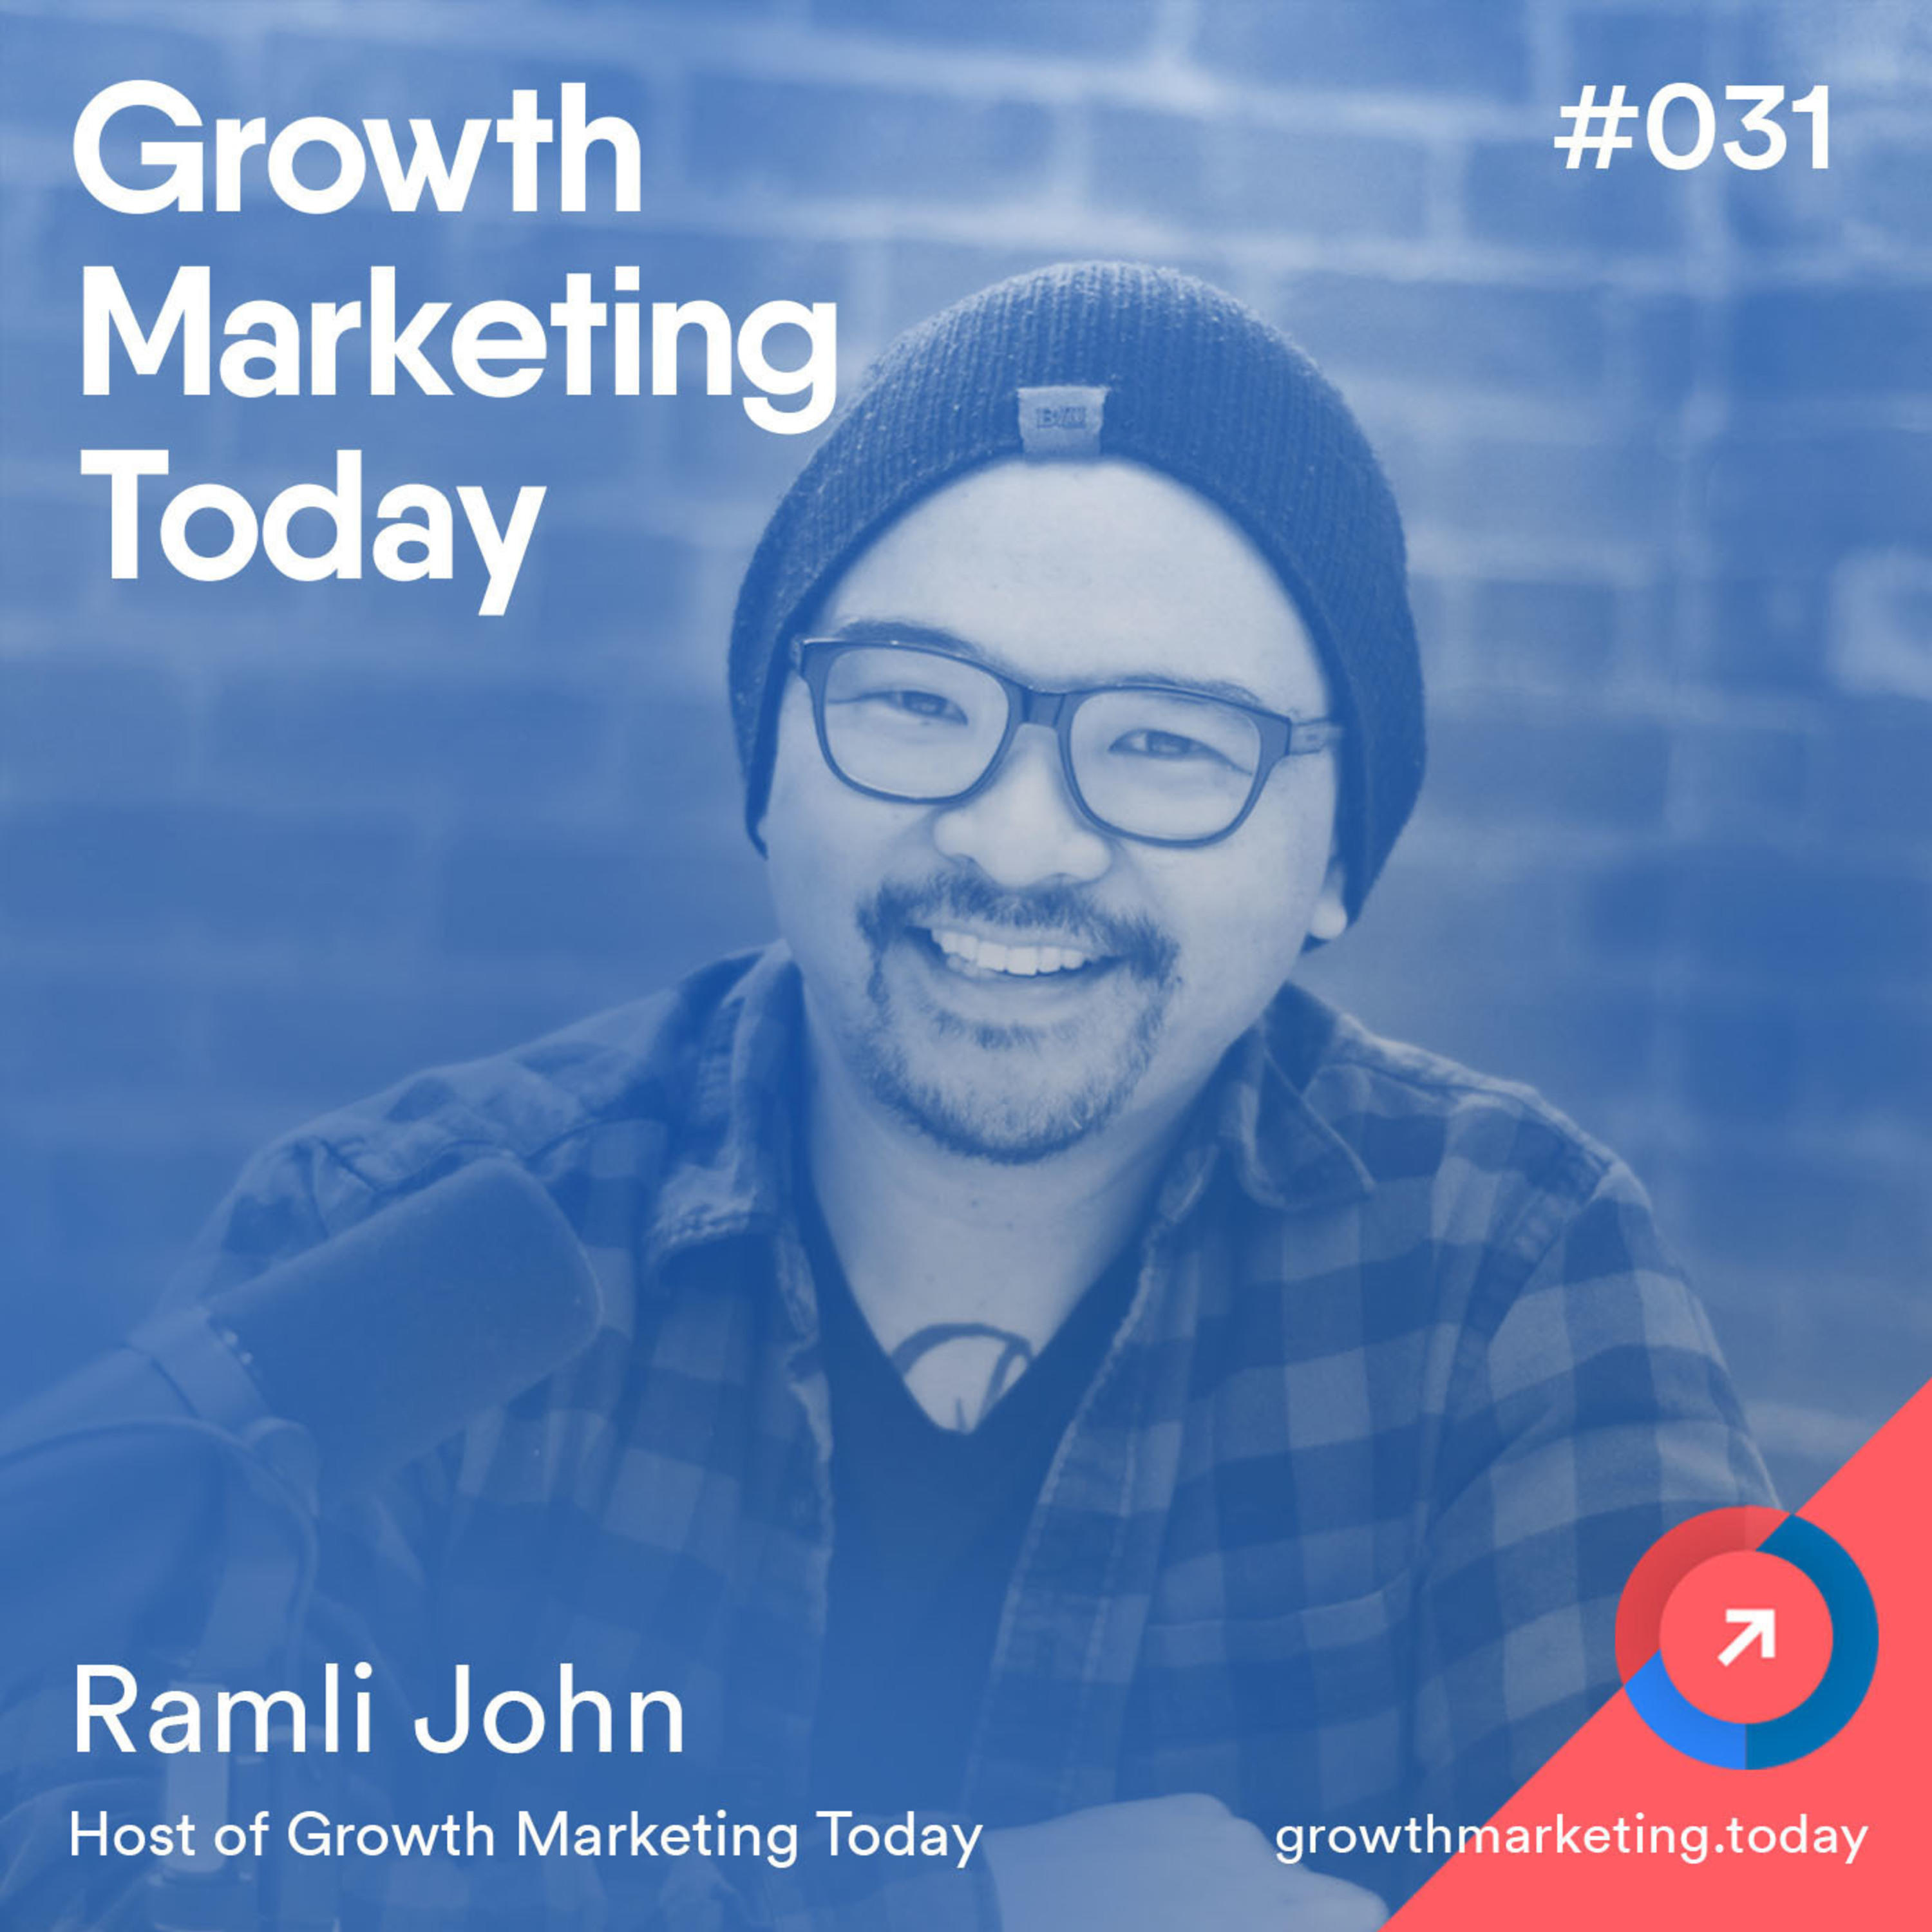 GMT031: Where Did Ramli john Go?